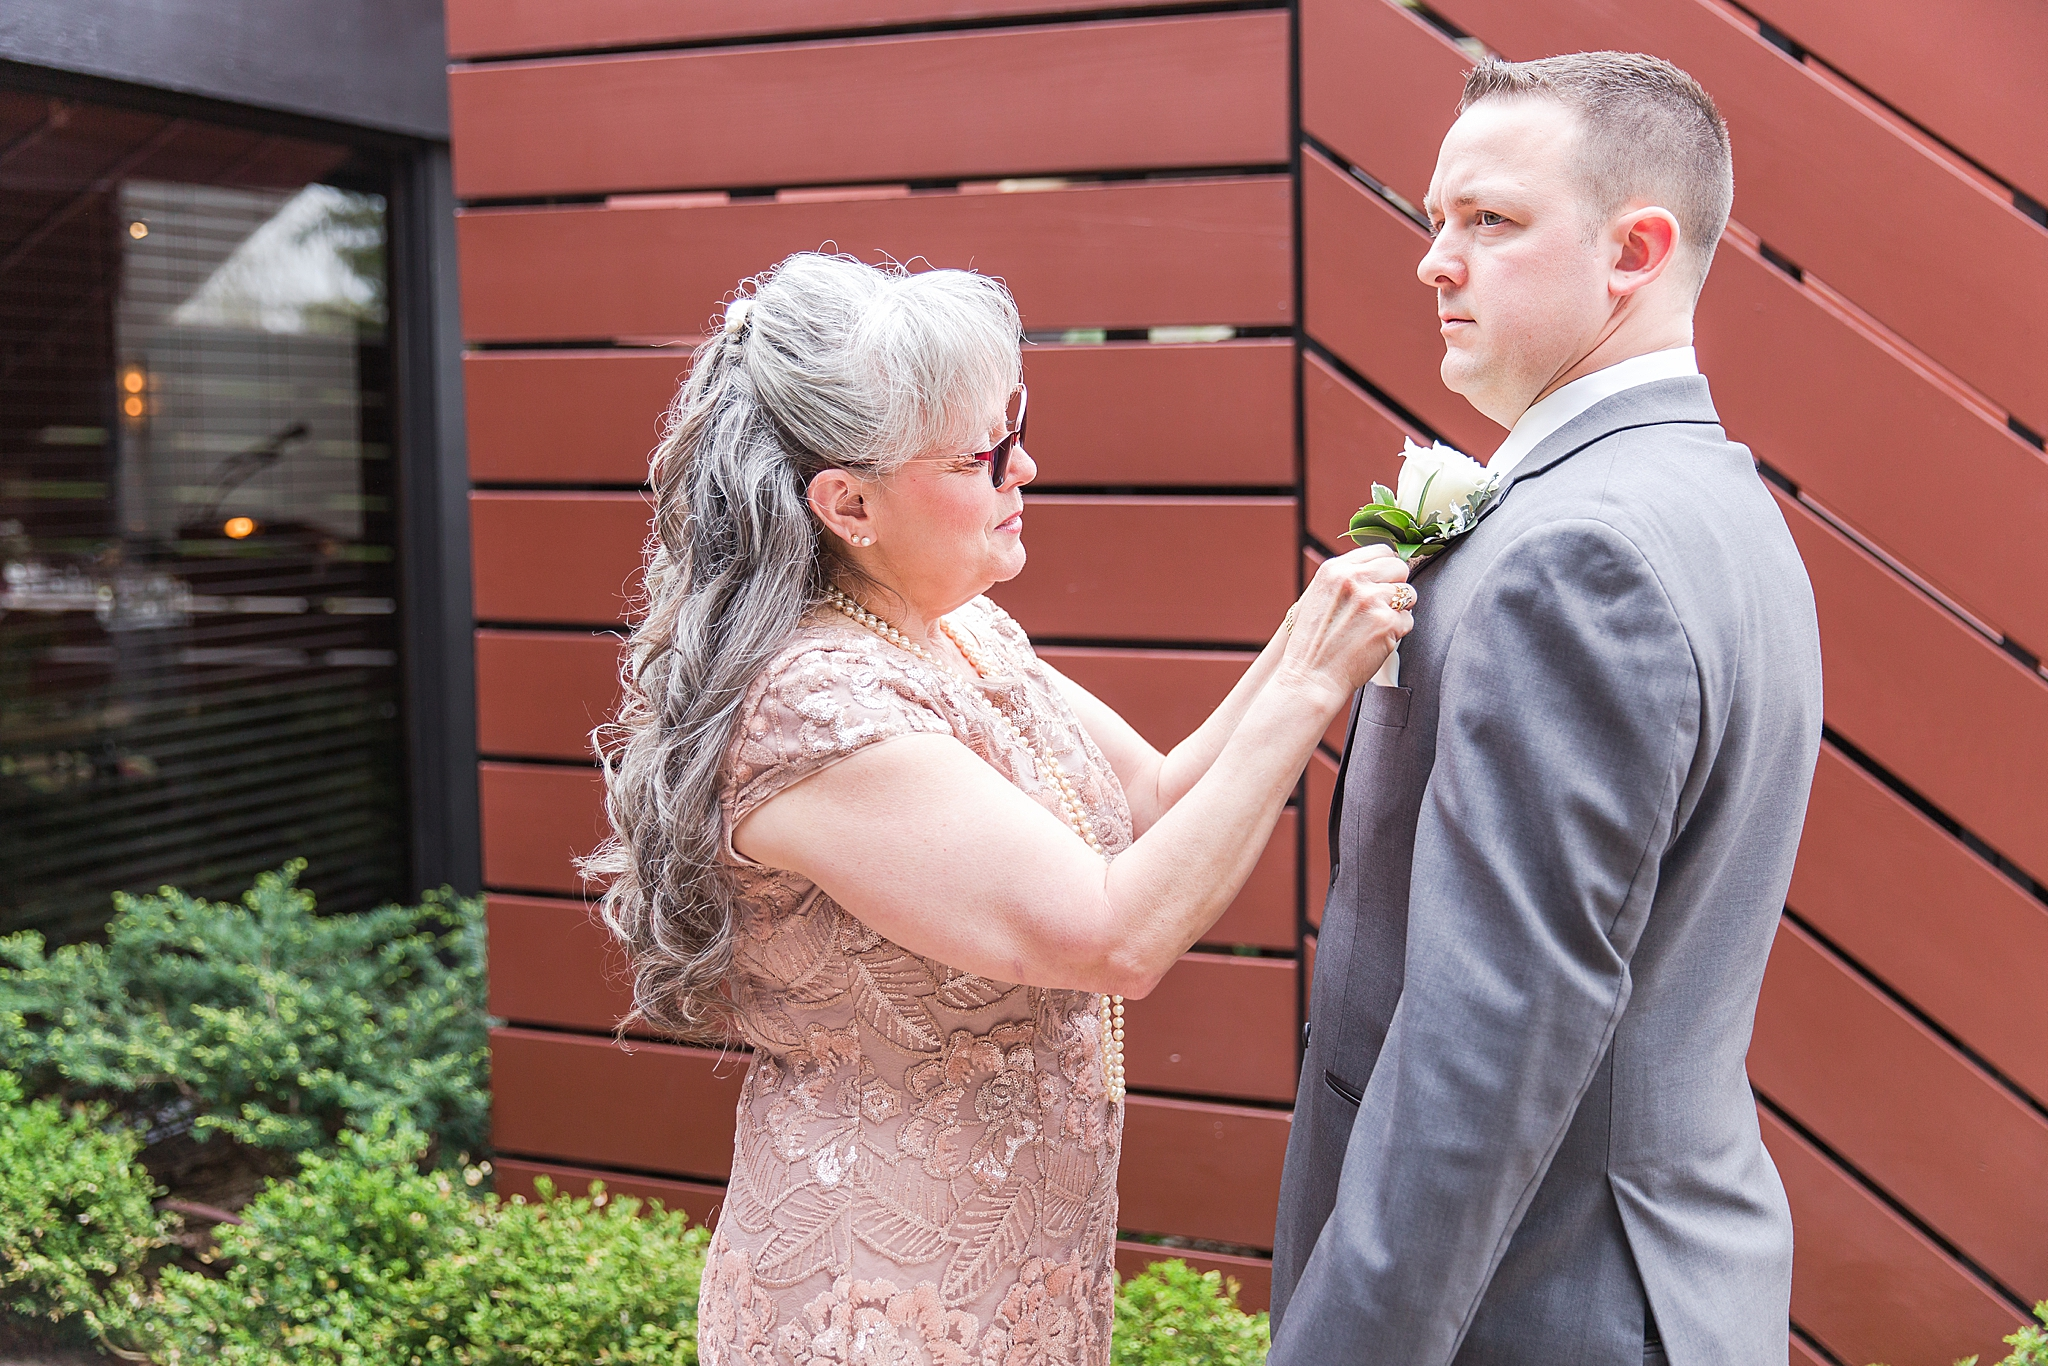 modern-romantic-wedding-photography-at-webers-in-ann-arbor-michigan-by-courtney-carolyn-photography_0016.jpg